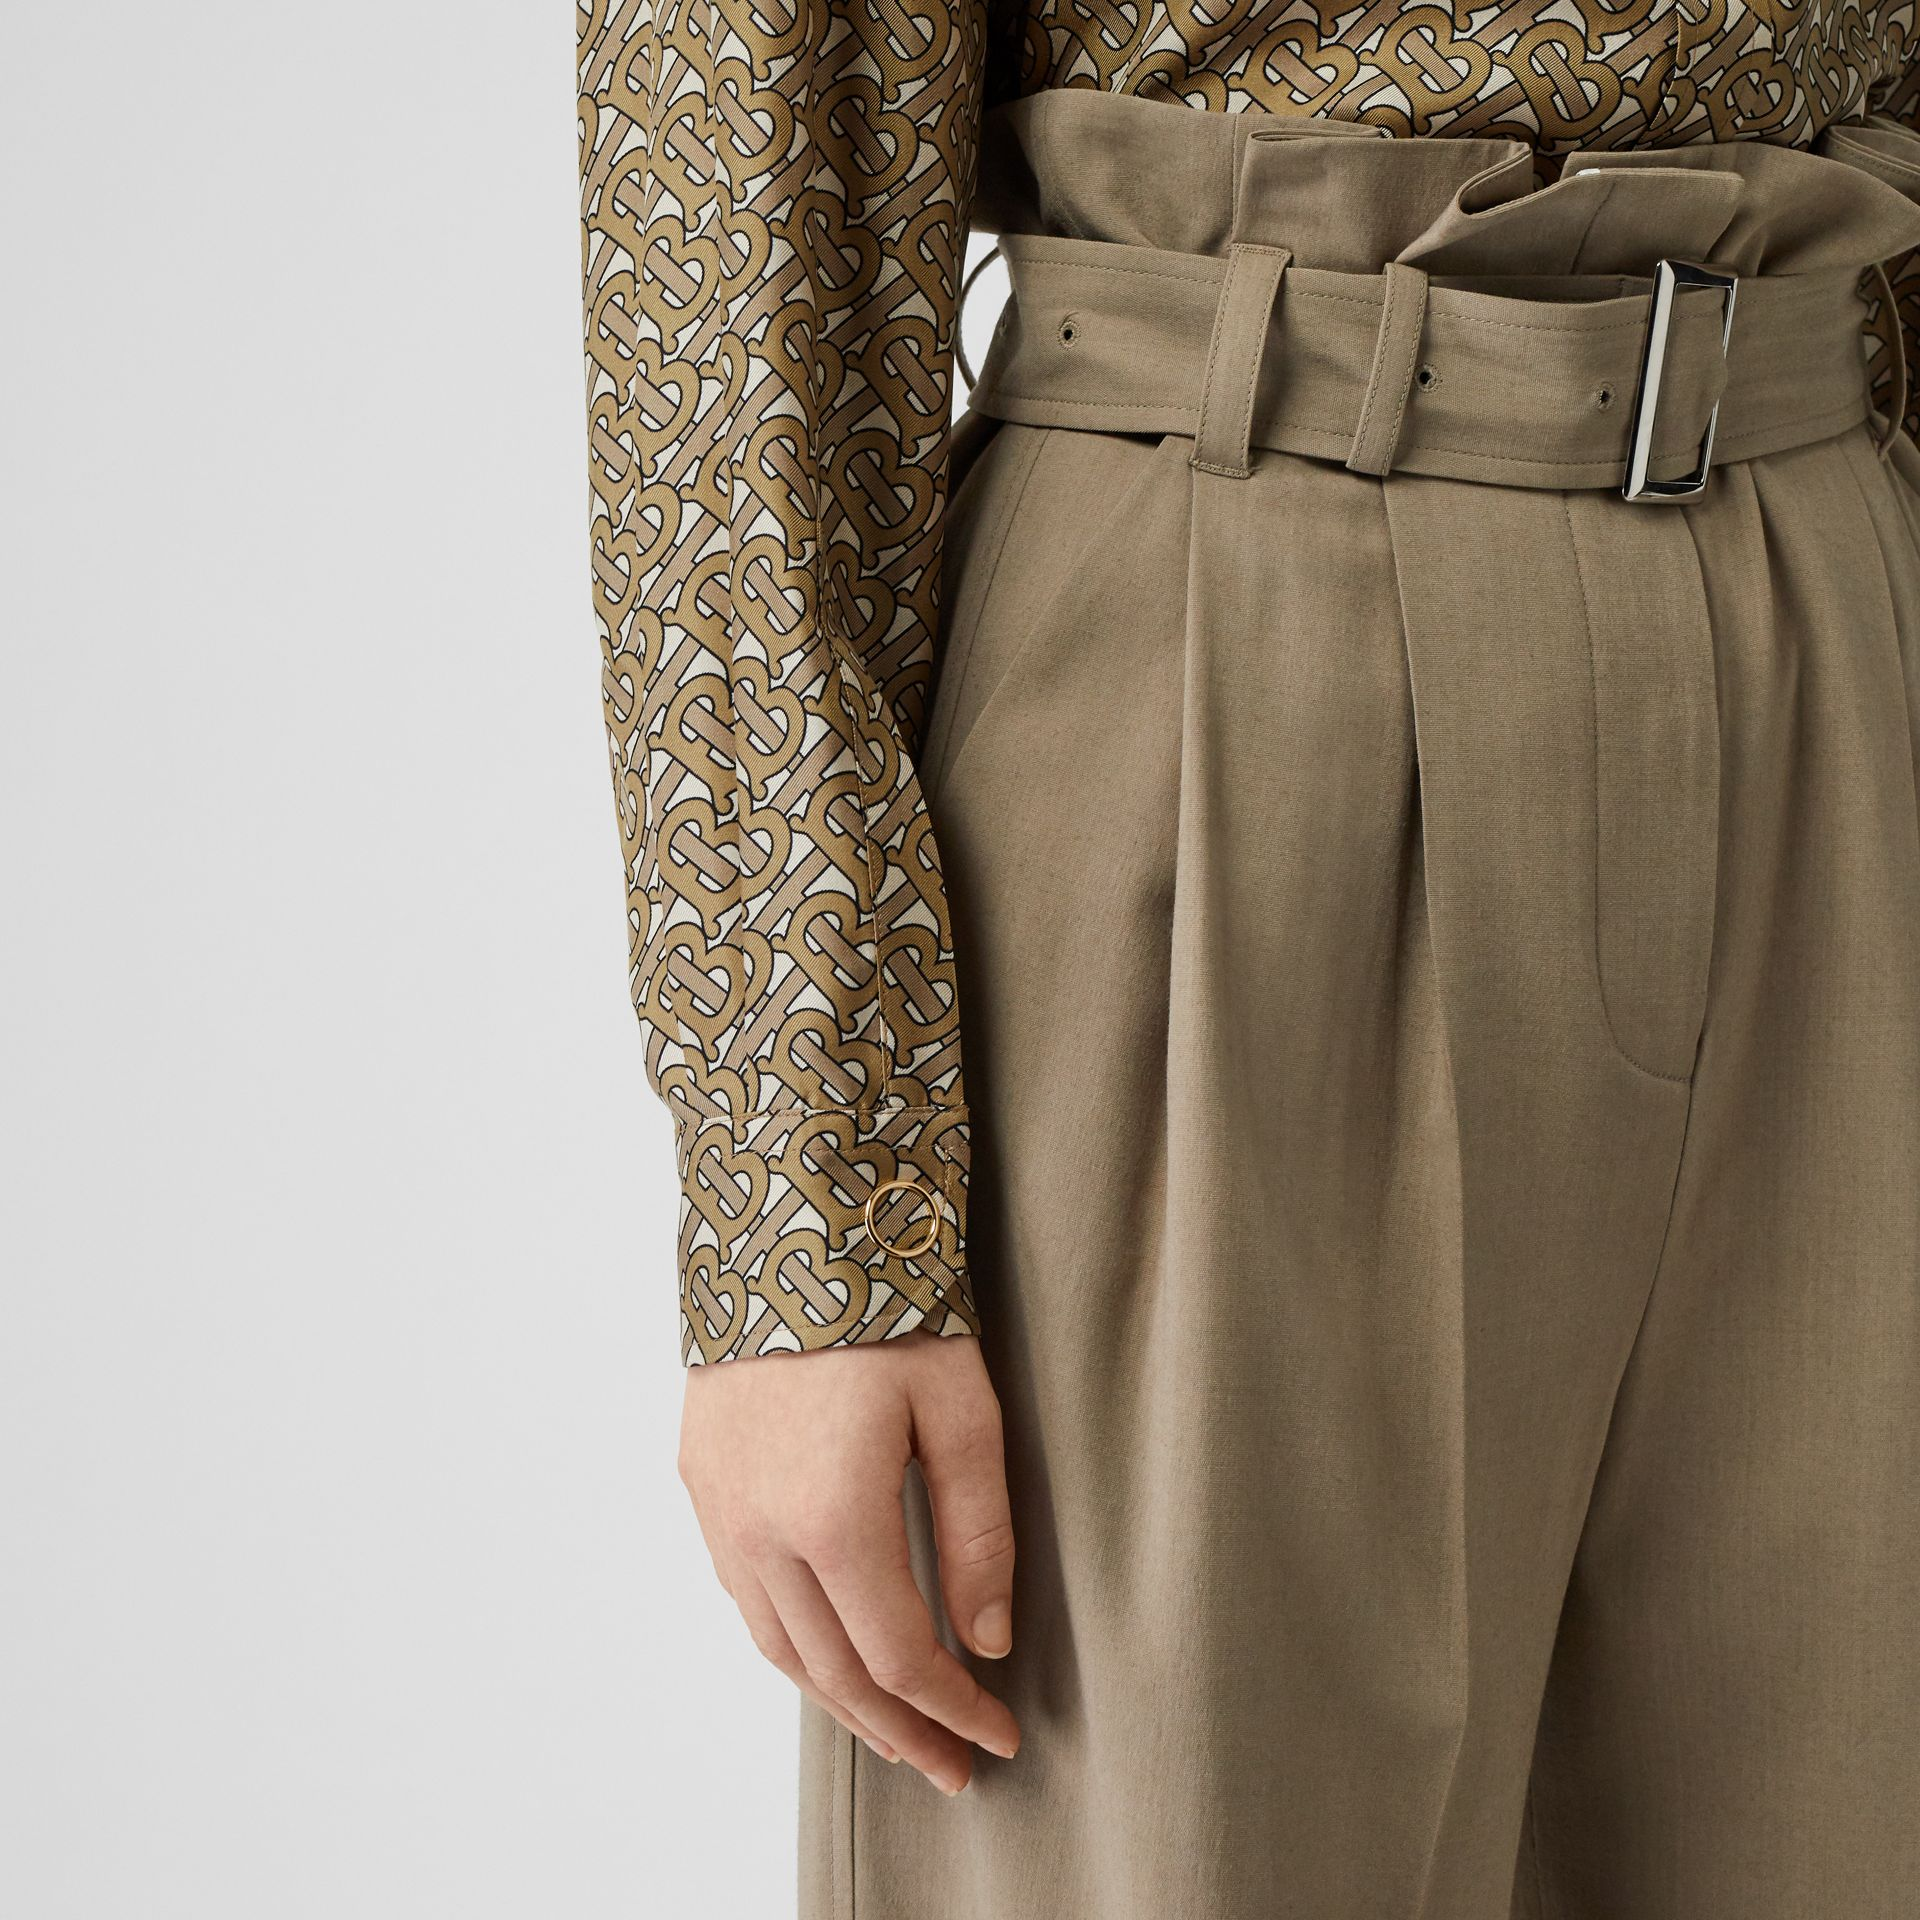 Contrast Collar Monogram Print Silk Shirt in Military Olive - Women | Burberry Singapore - gallery image 4